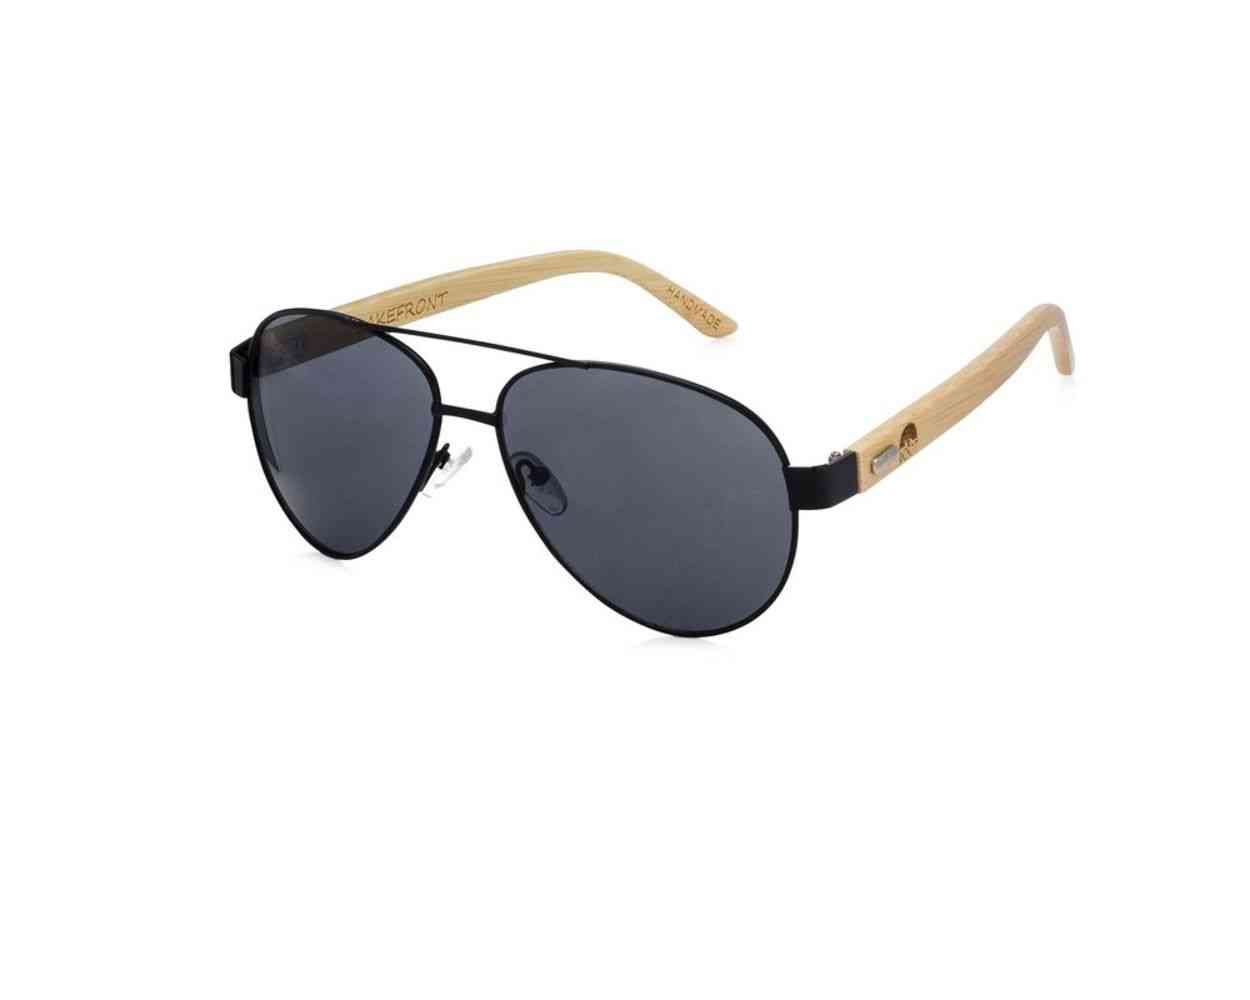 Bamboo Temples, S/s Frame Sunglass